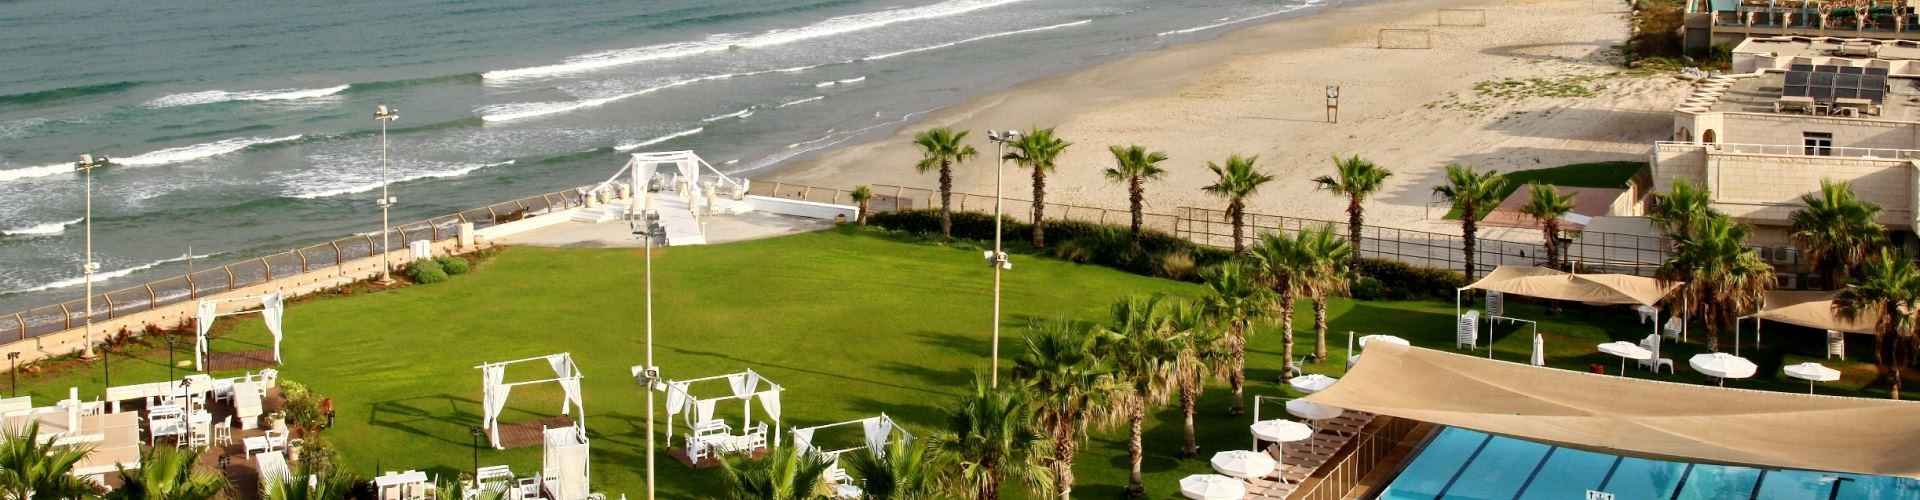 Palm Beach Hotel Akko - Contact Us